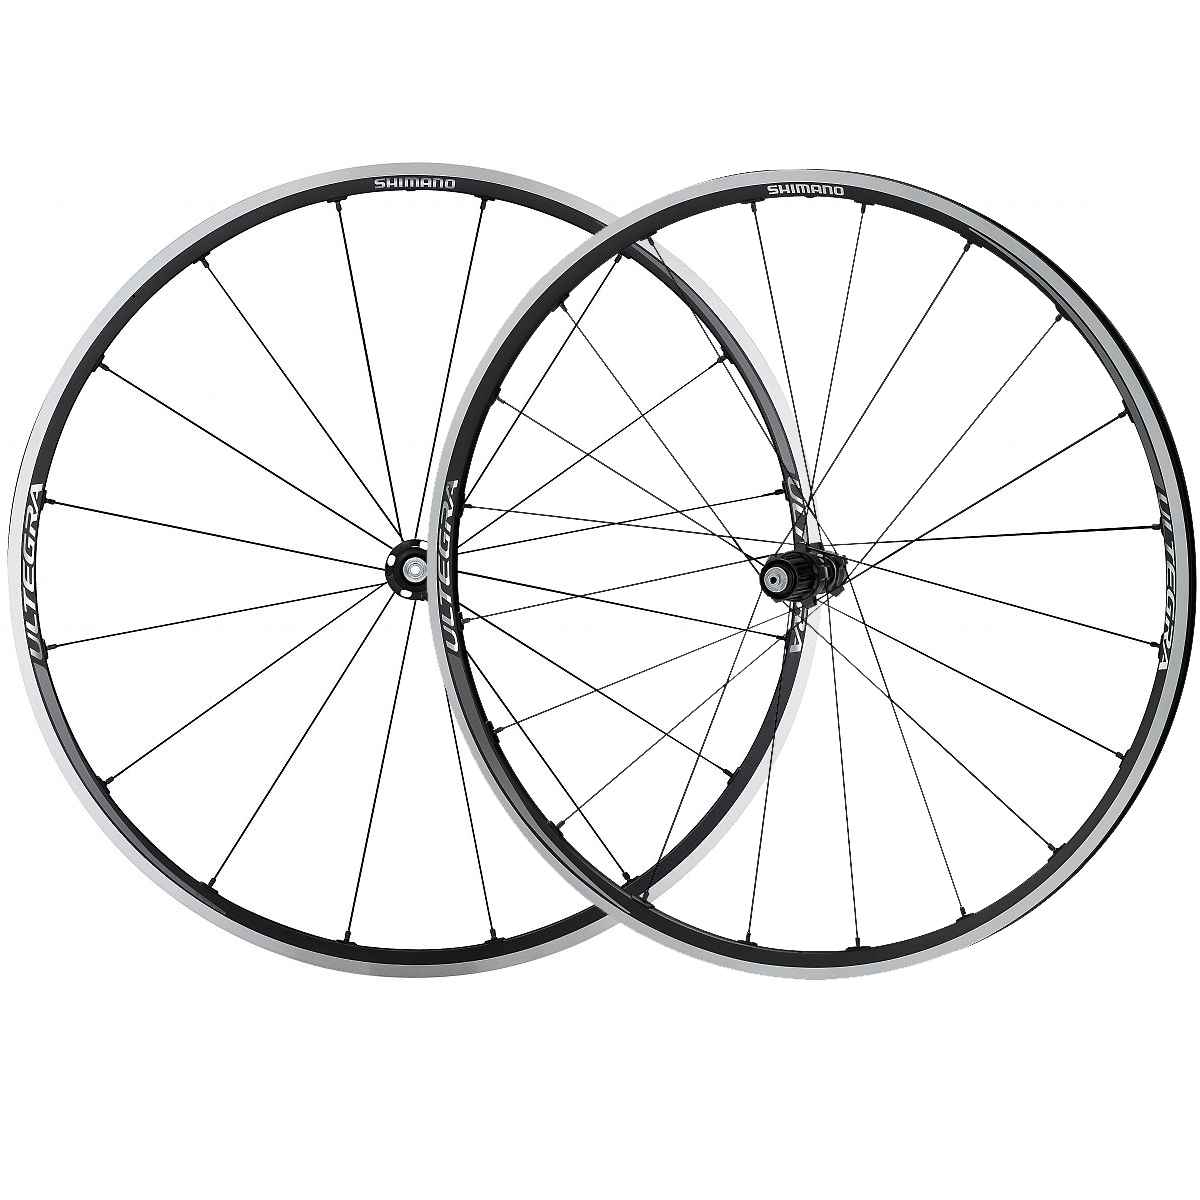 Shimano Ultegra WH-6800 Clincher Road Wheelset